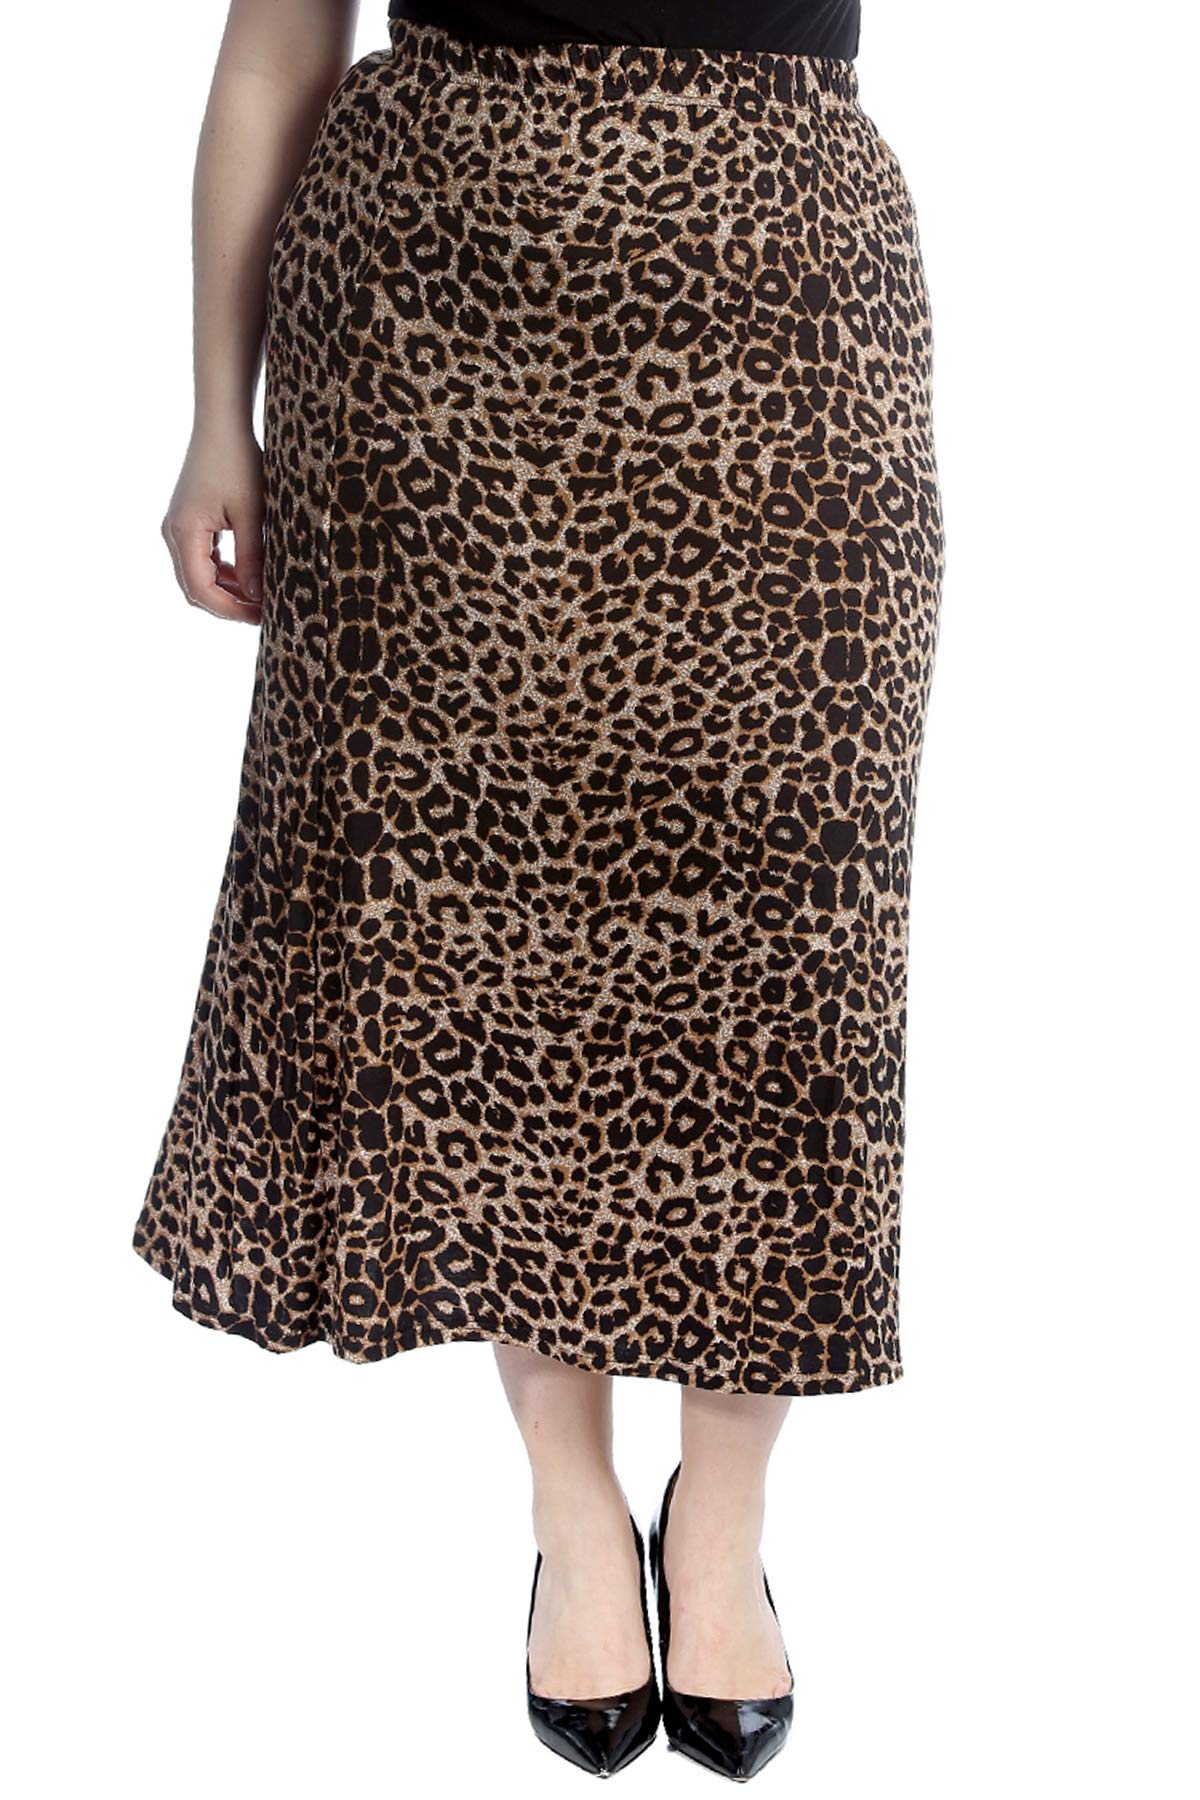 Nouvelle Collection Leopard Print Mid Calf Skirt Brown 20 by Nouvelle Collection (Image #1)